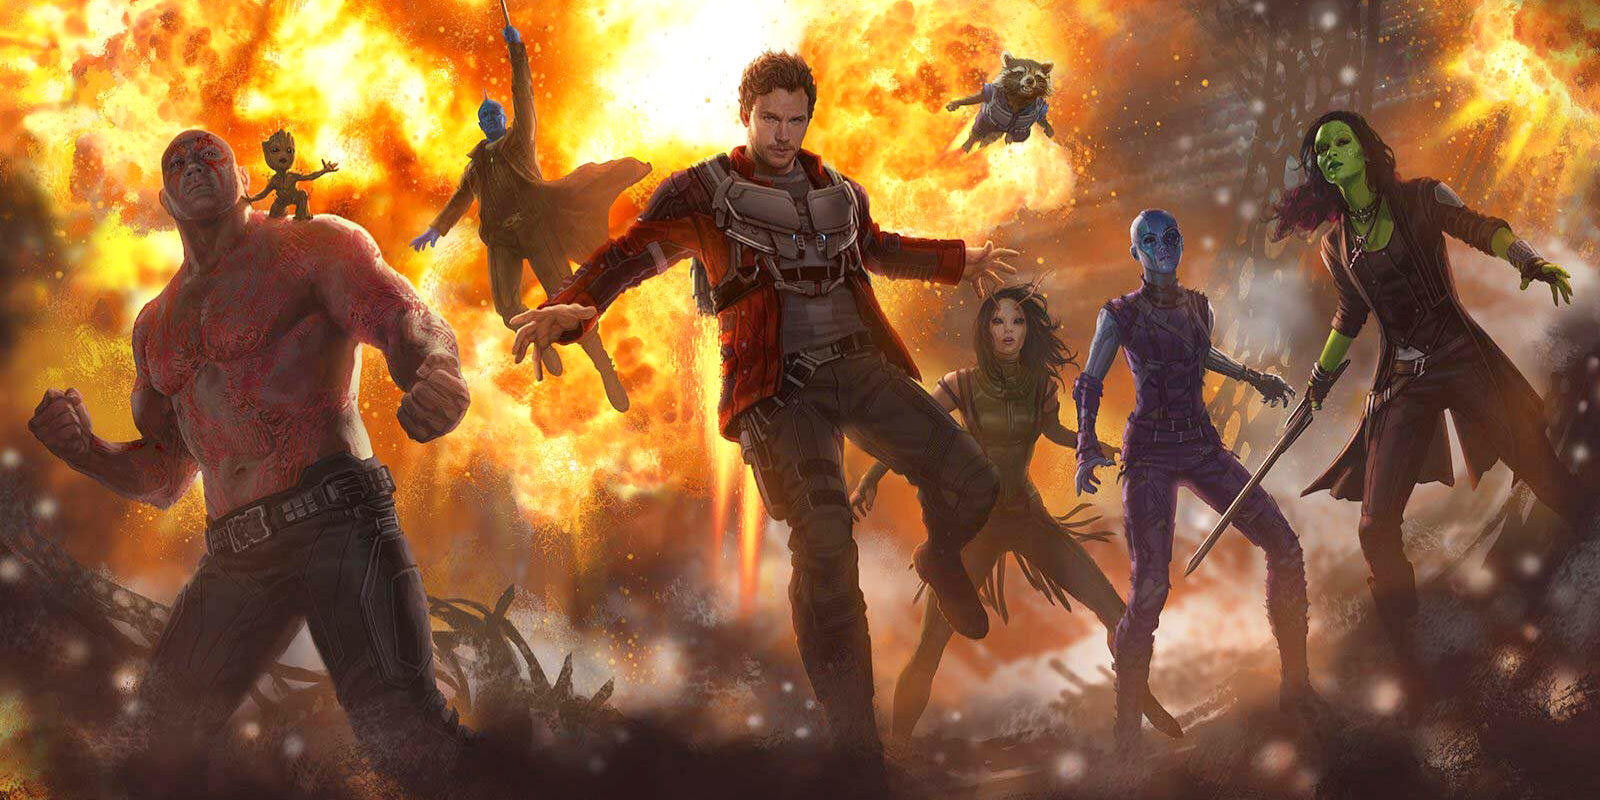 Guardians of the Galaxy Vol. 2 – Movie Review